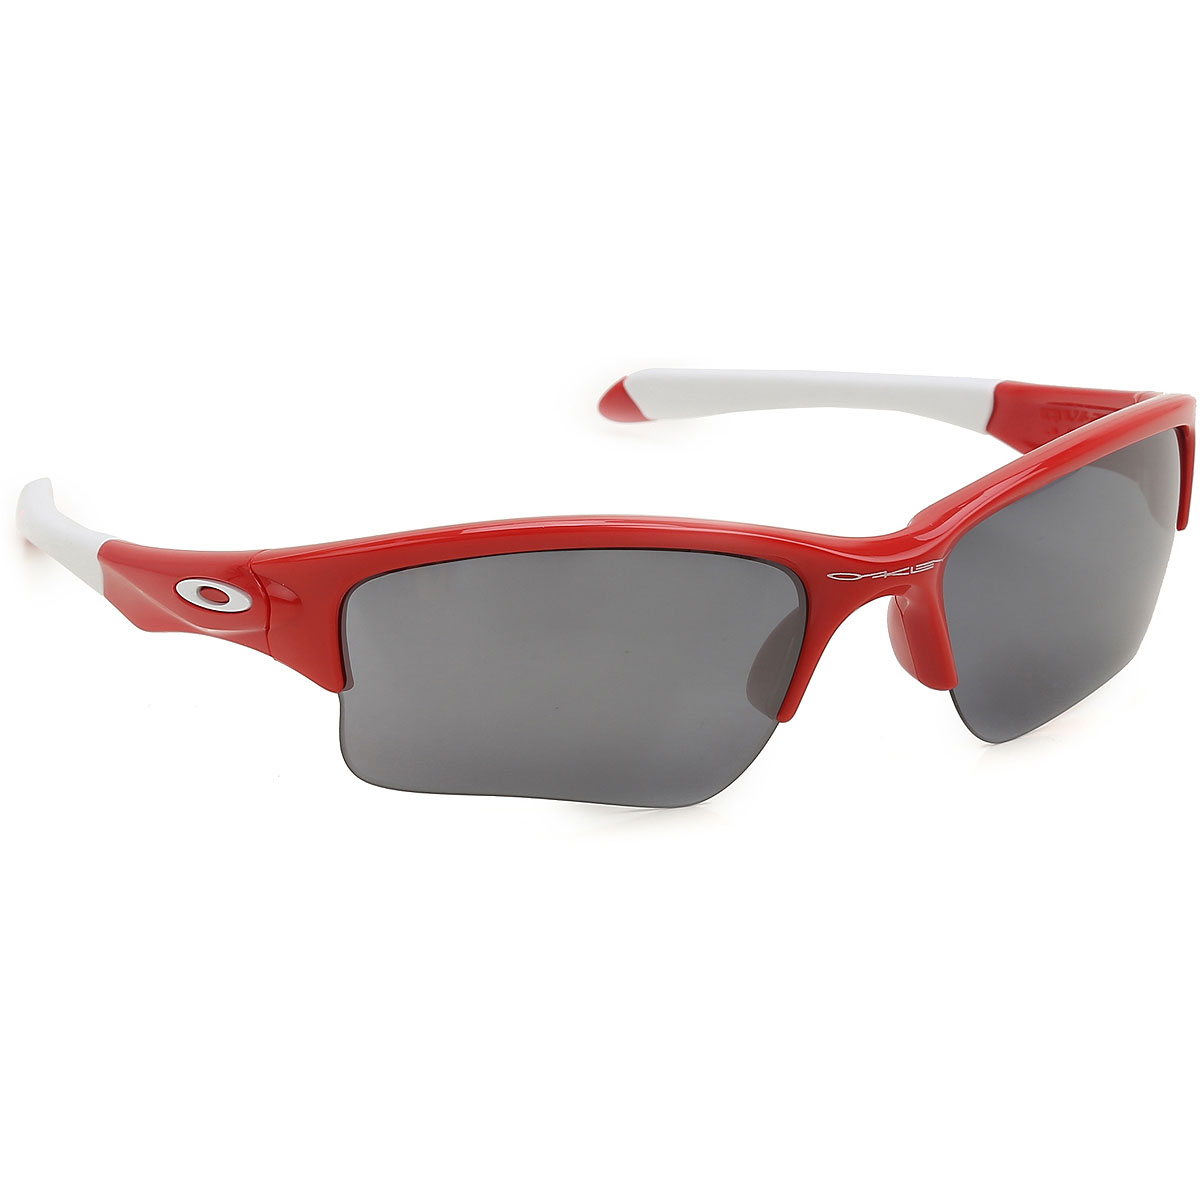 Image of Oakley Kids Sunglasses for Boys On Sale in Outlet, Red, 2017